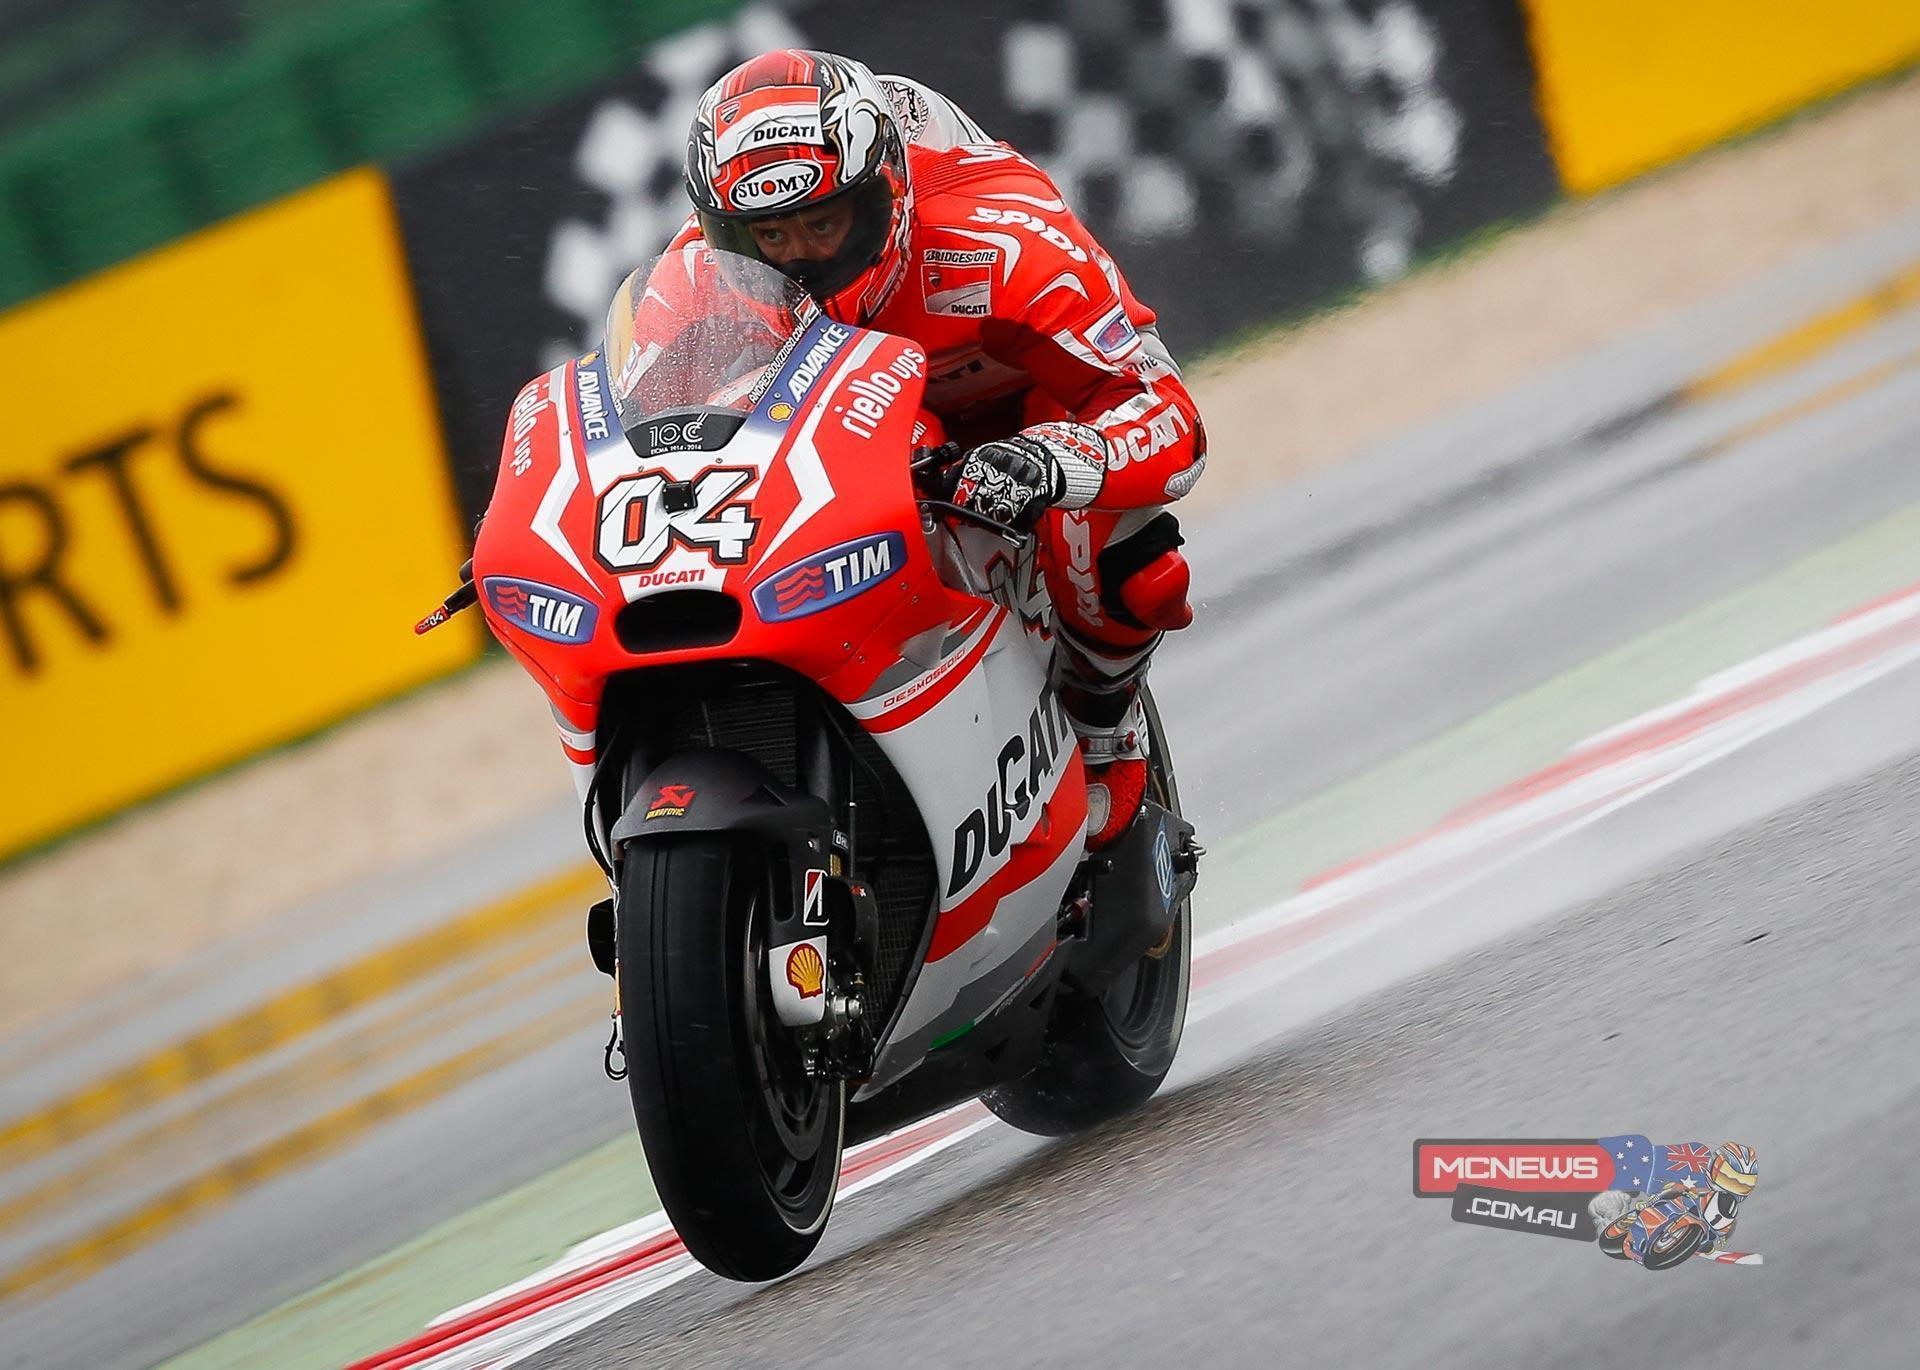 Drenched day one at Misano MotoGP